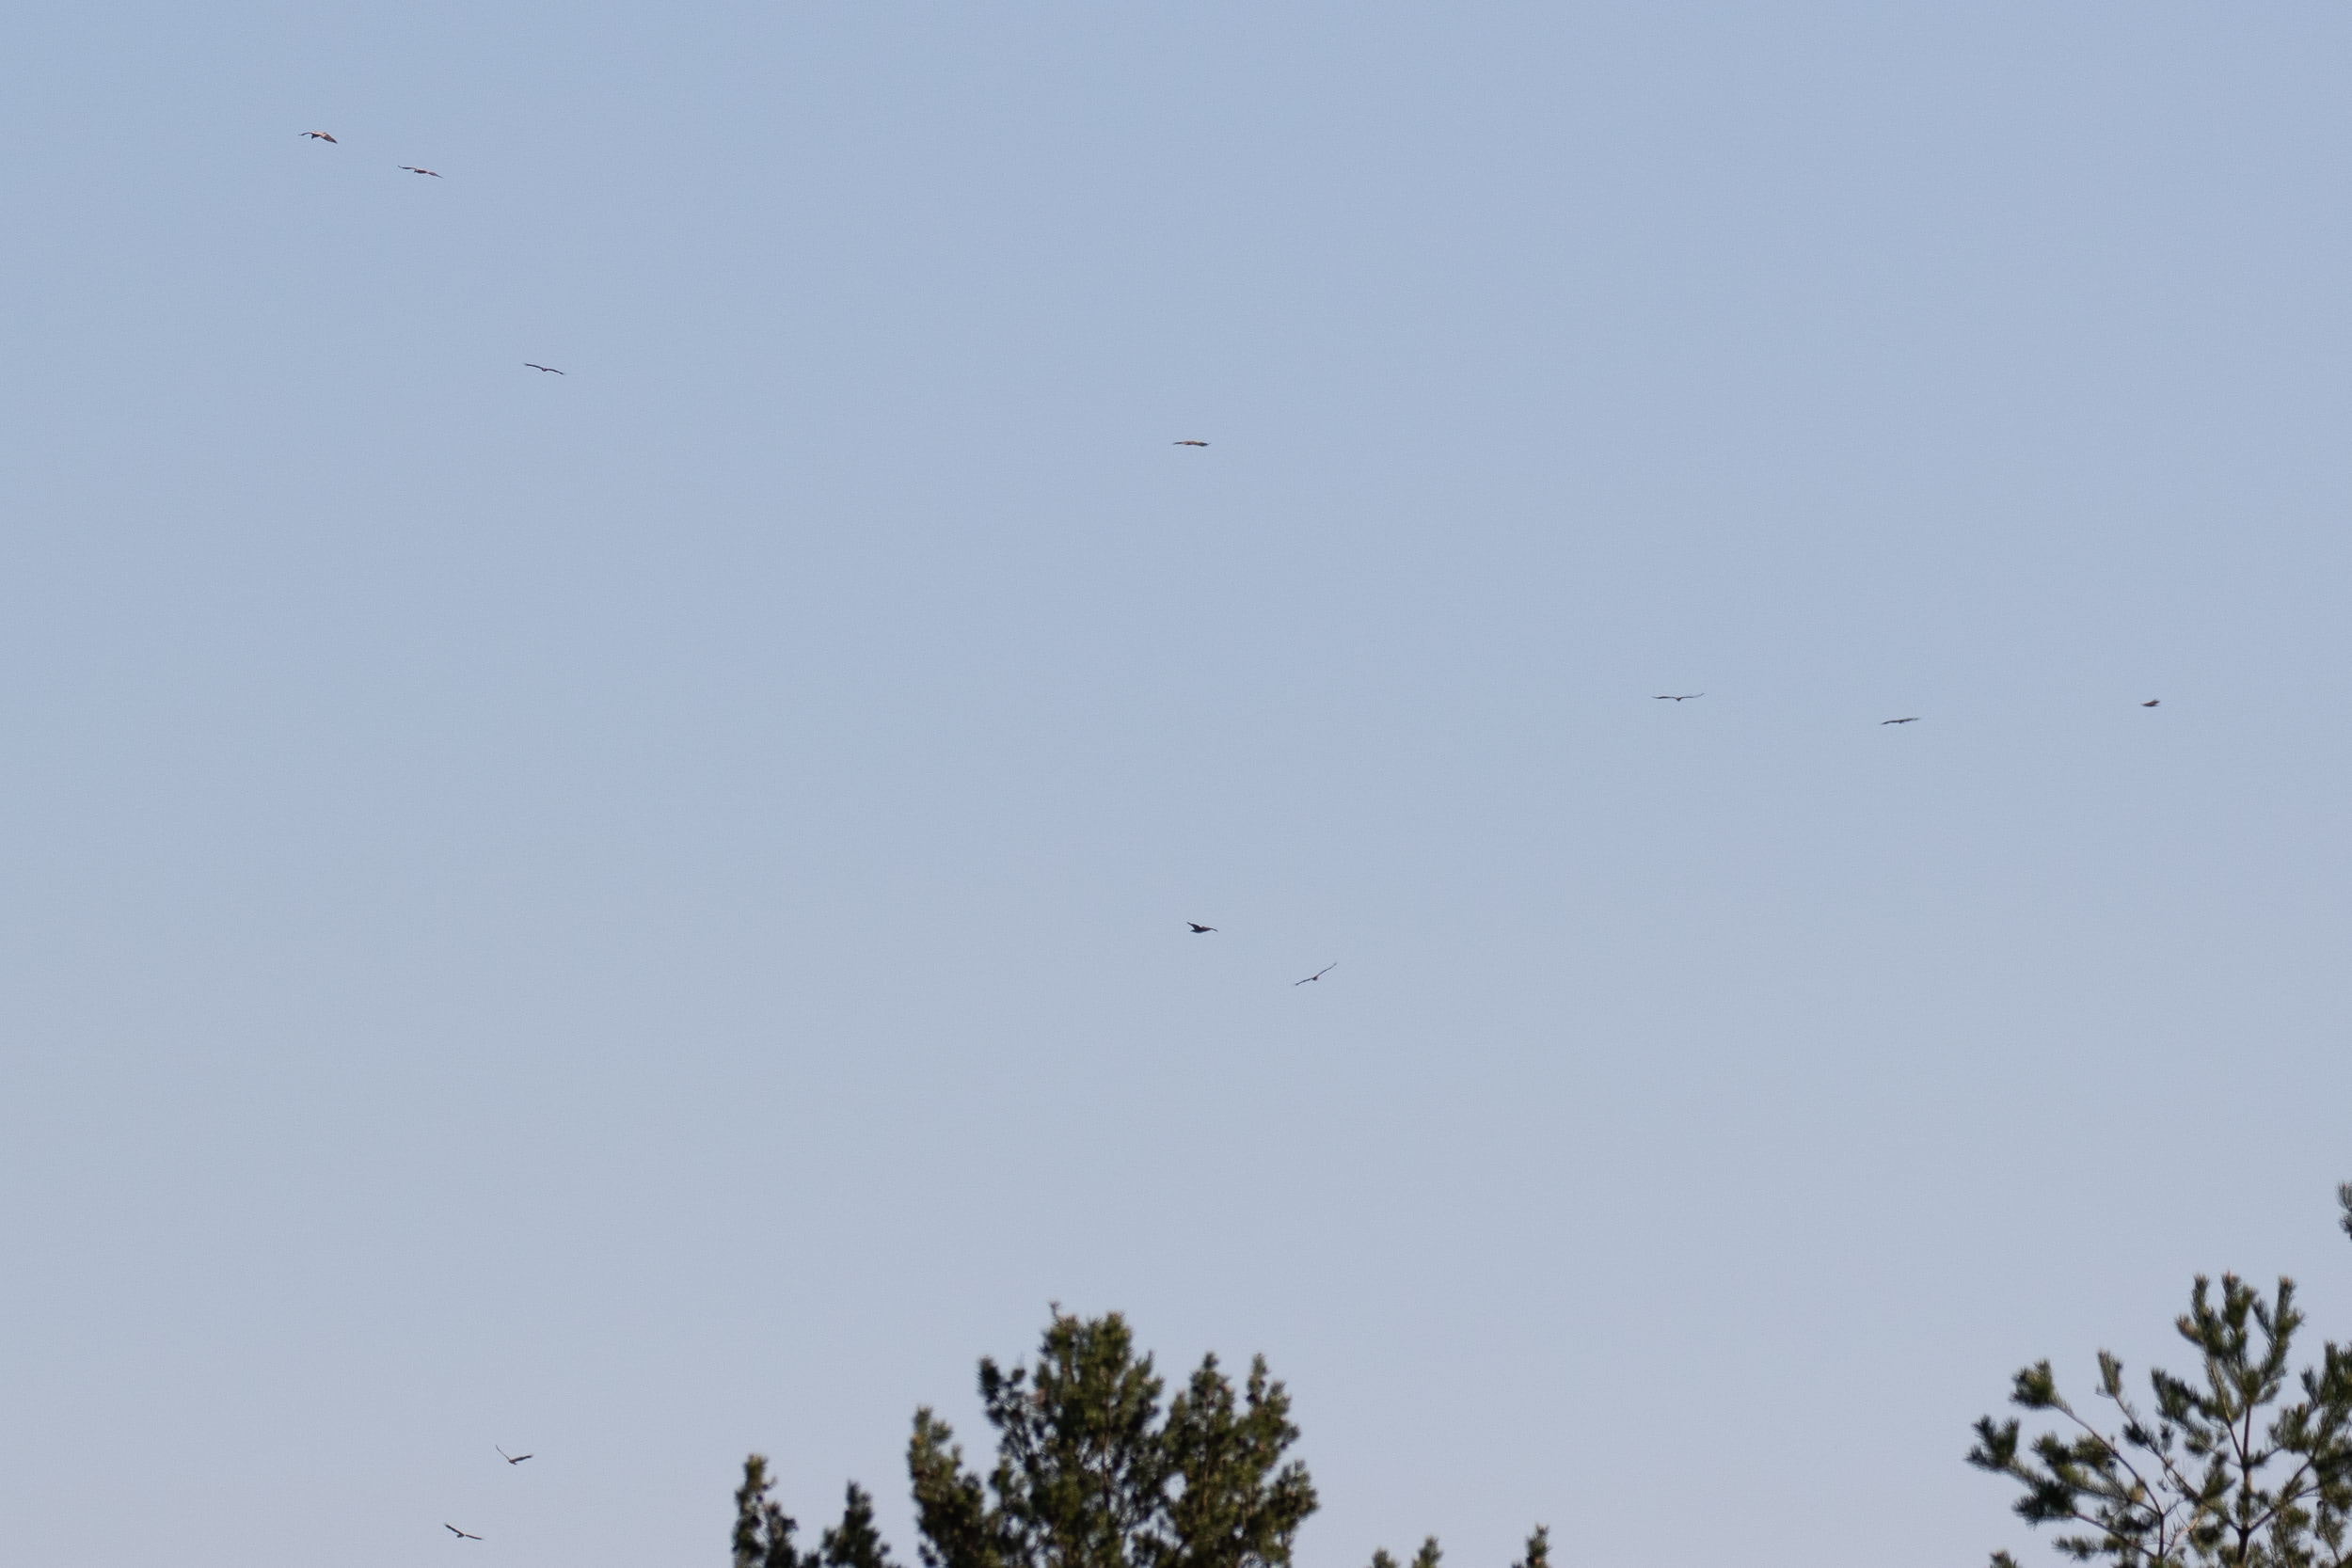 Quite regularly the geese would be scared away from the bay by approaching White-tailed Eagles (so common we call them the Estonian House Sparrows). This kettle of 11 (!) White-tailed Eagles, however, was a surprise to see!